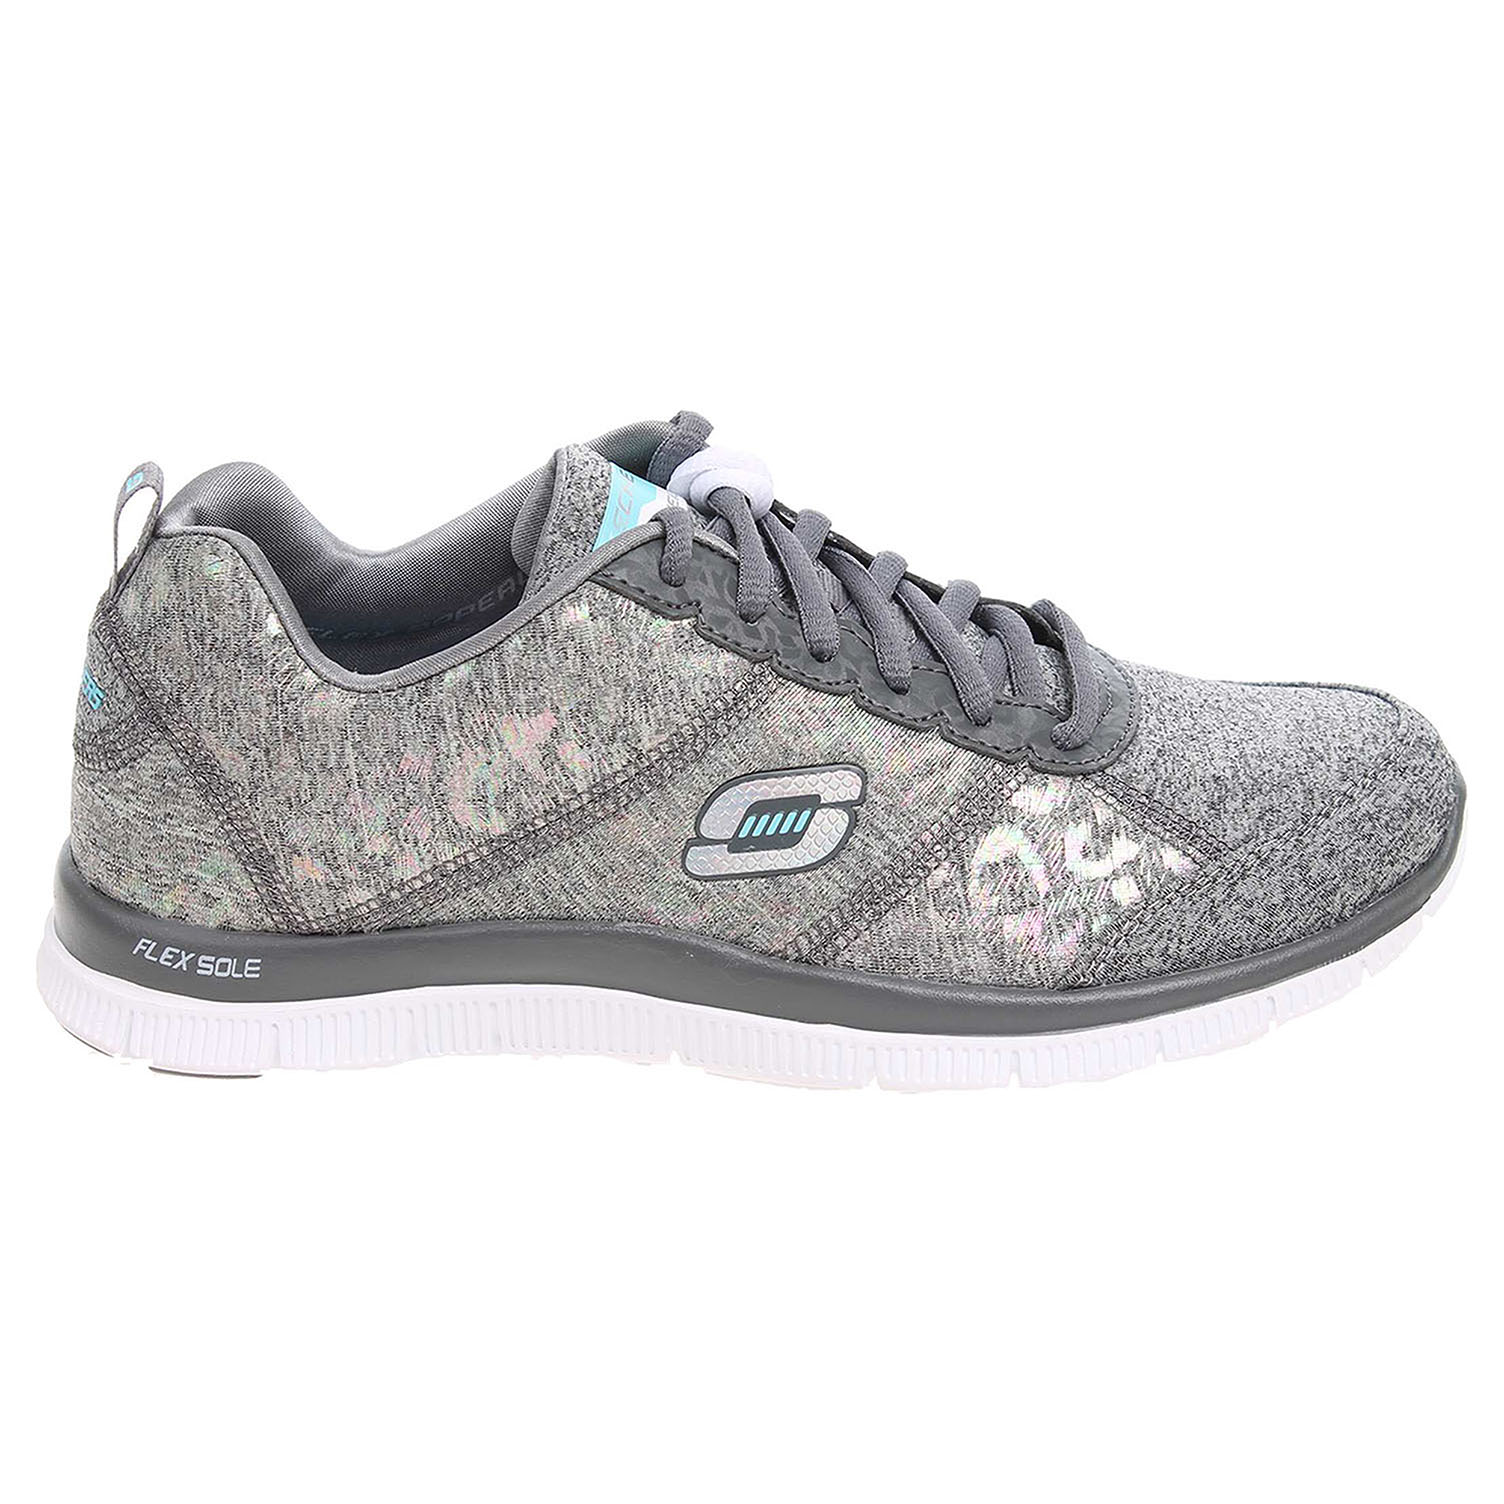 Skechers Hollywood Hills gray 38